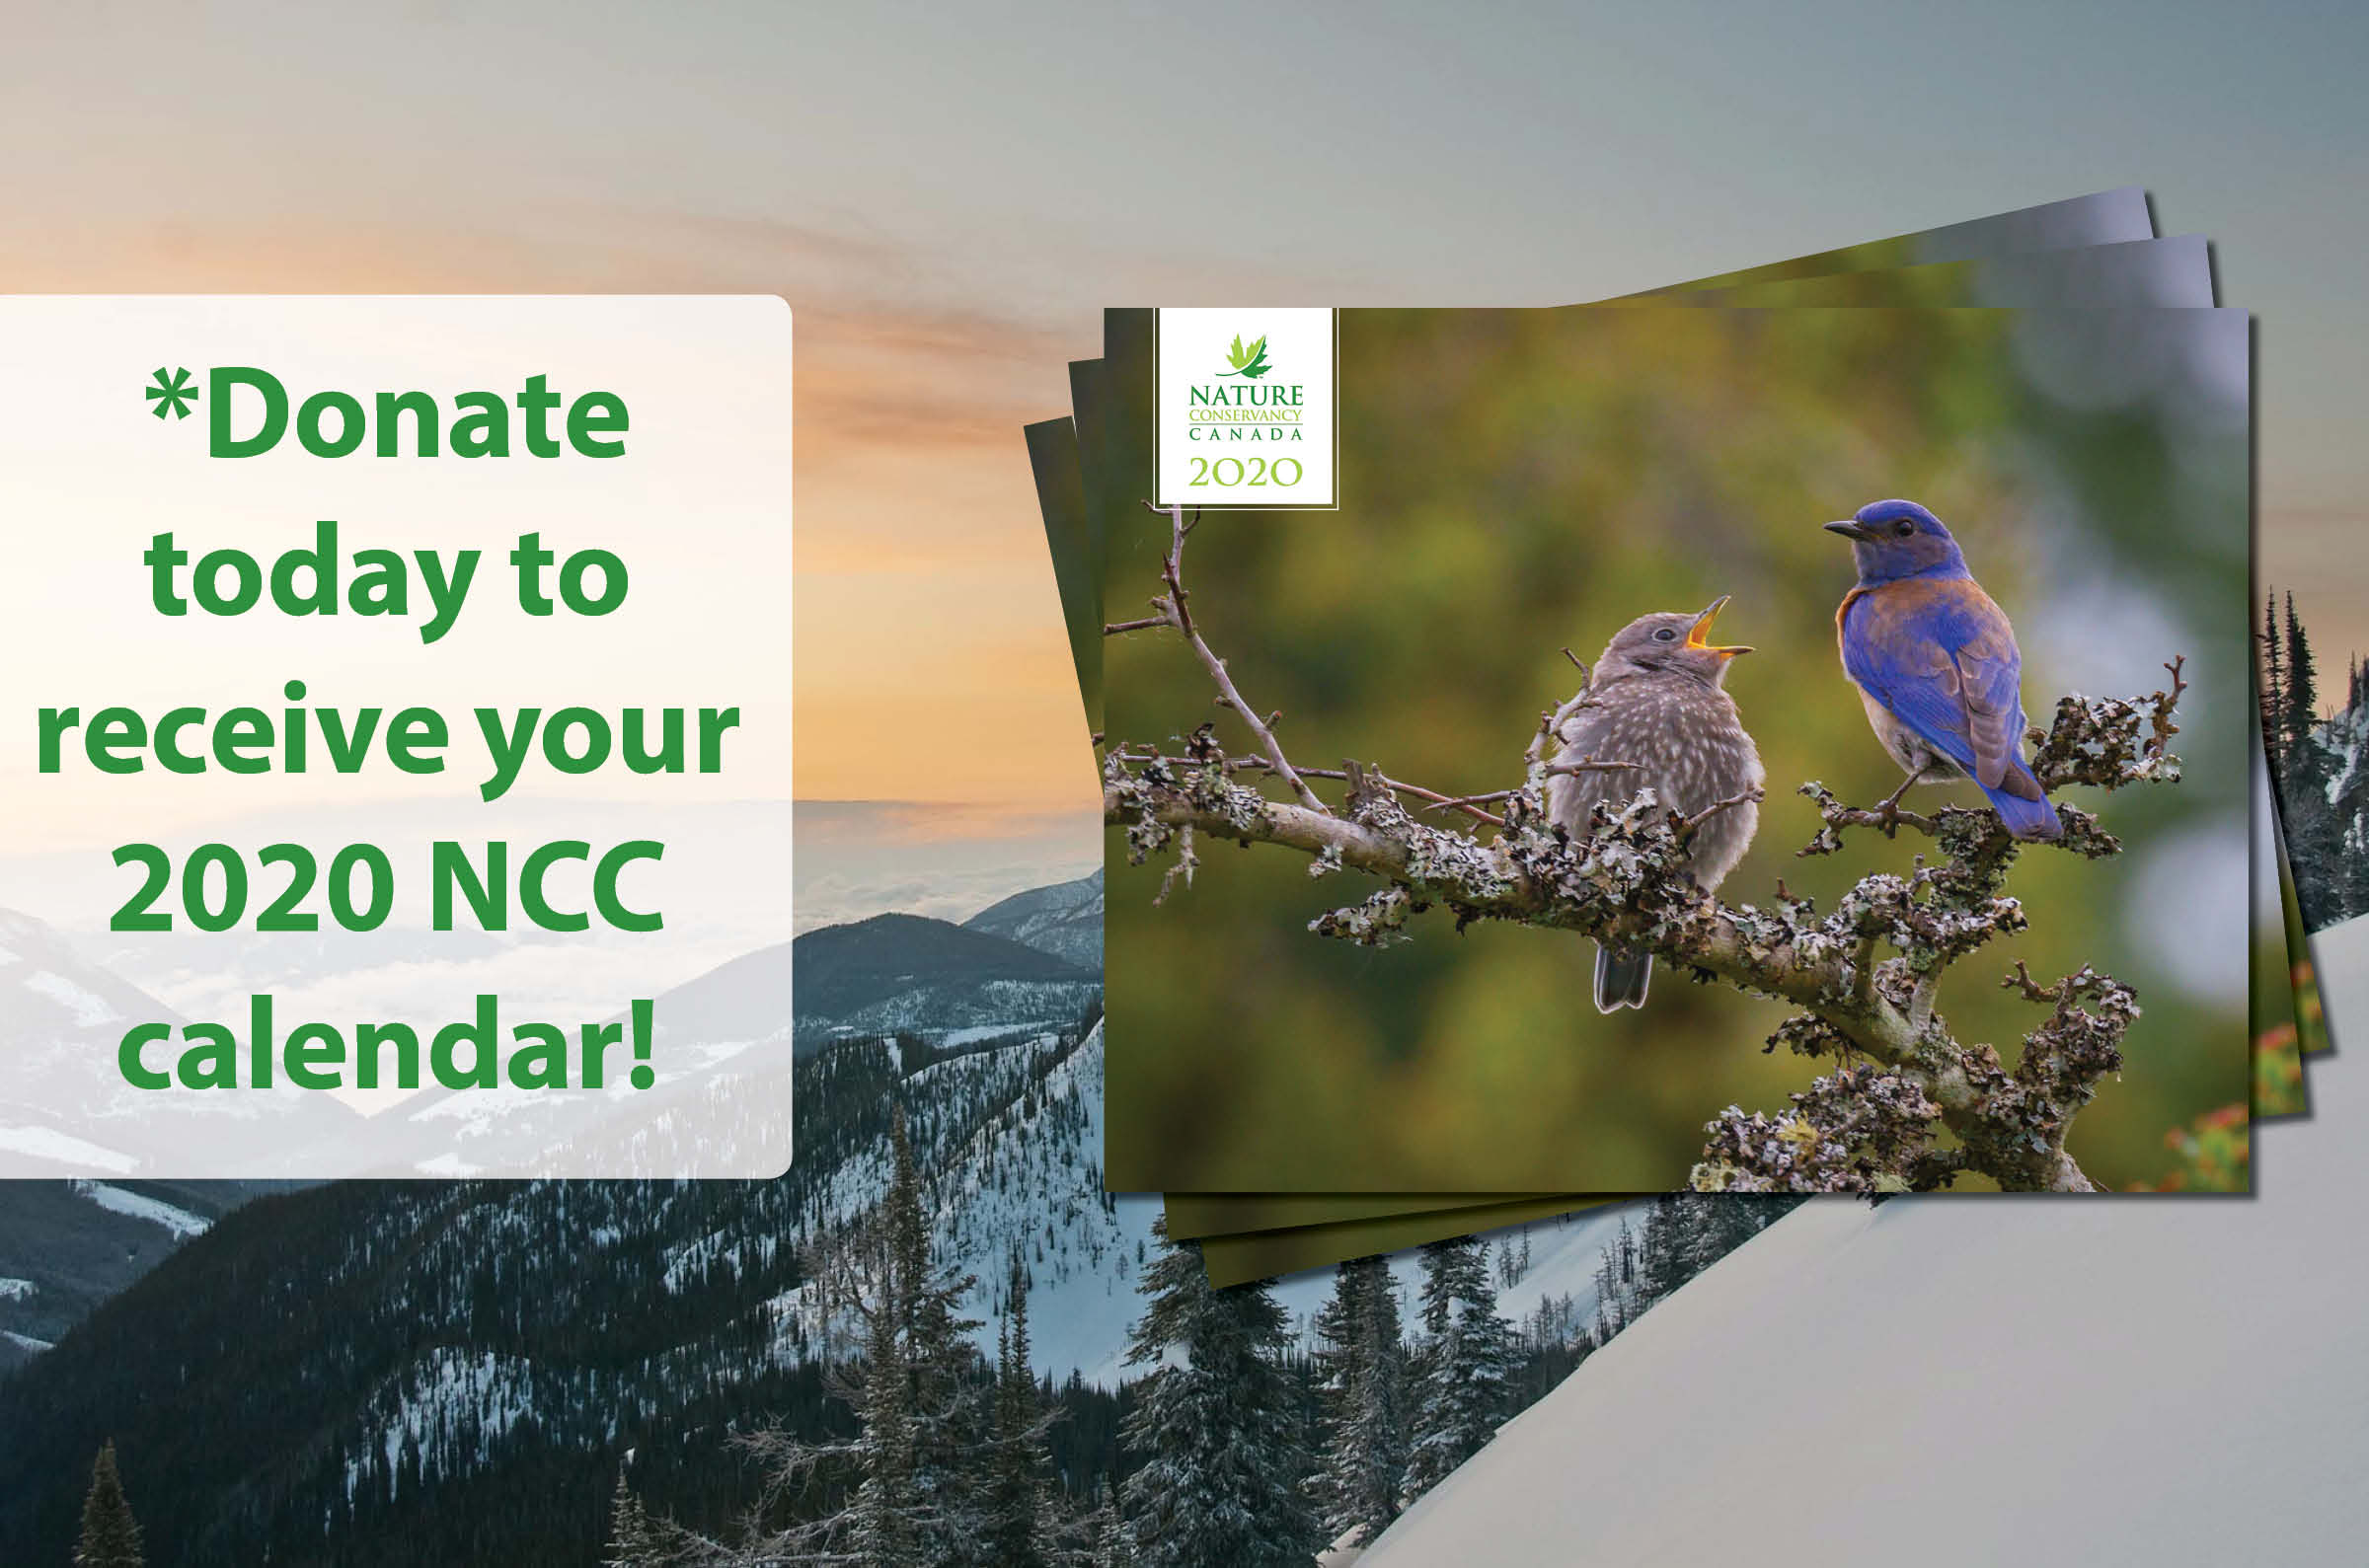 Donate $40 or more to receive your 2020 NCC calendar